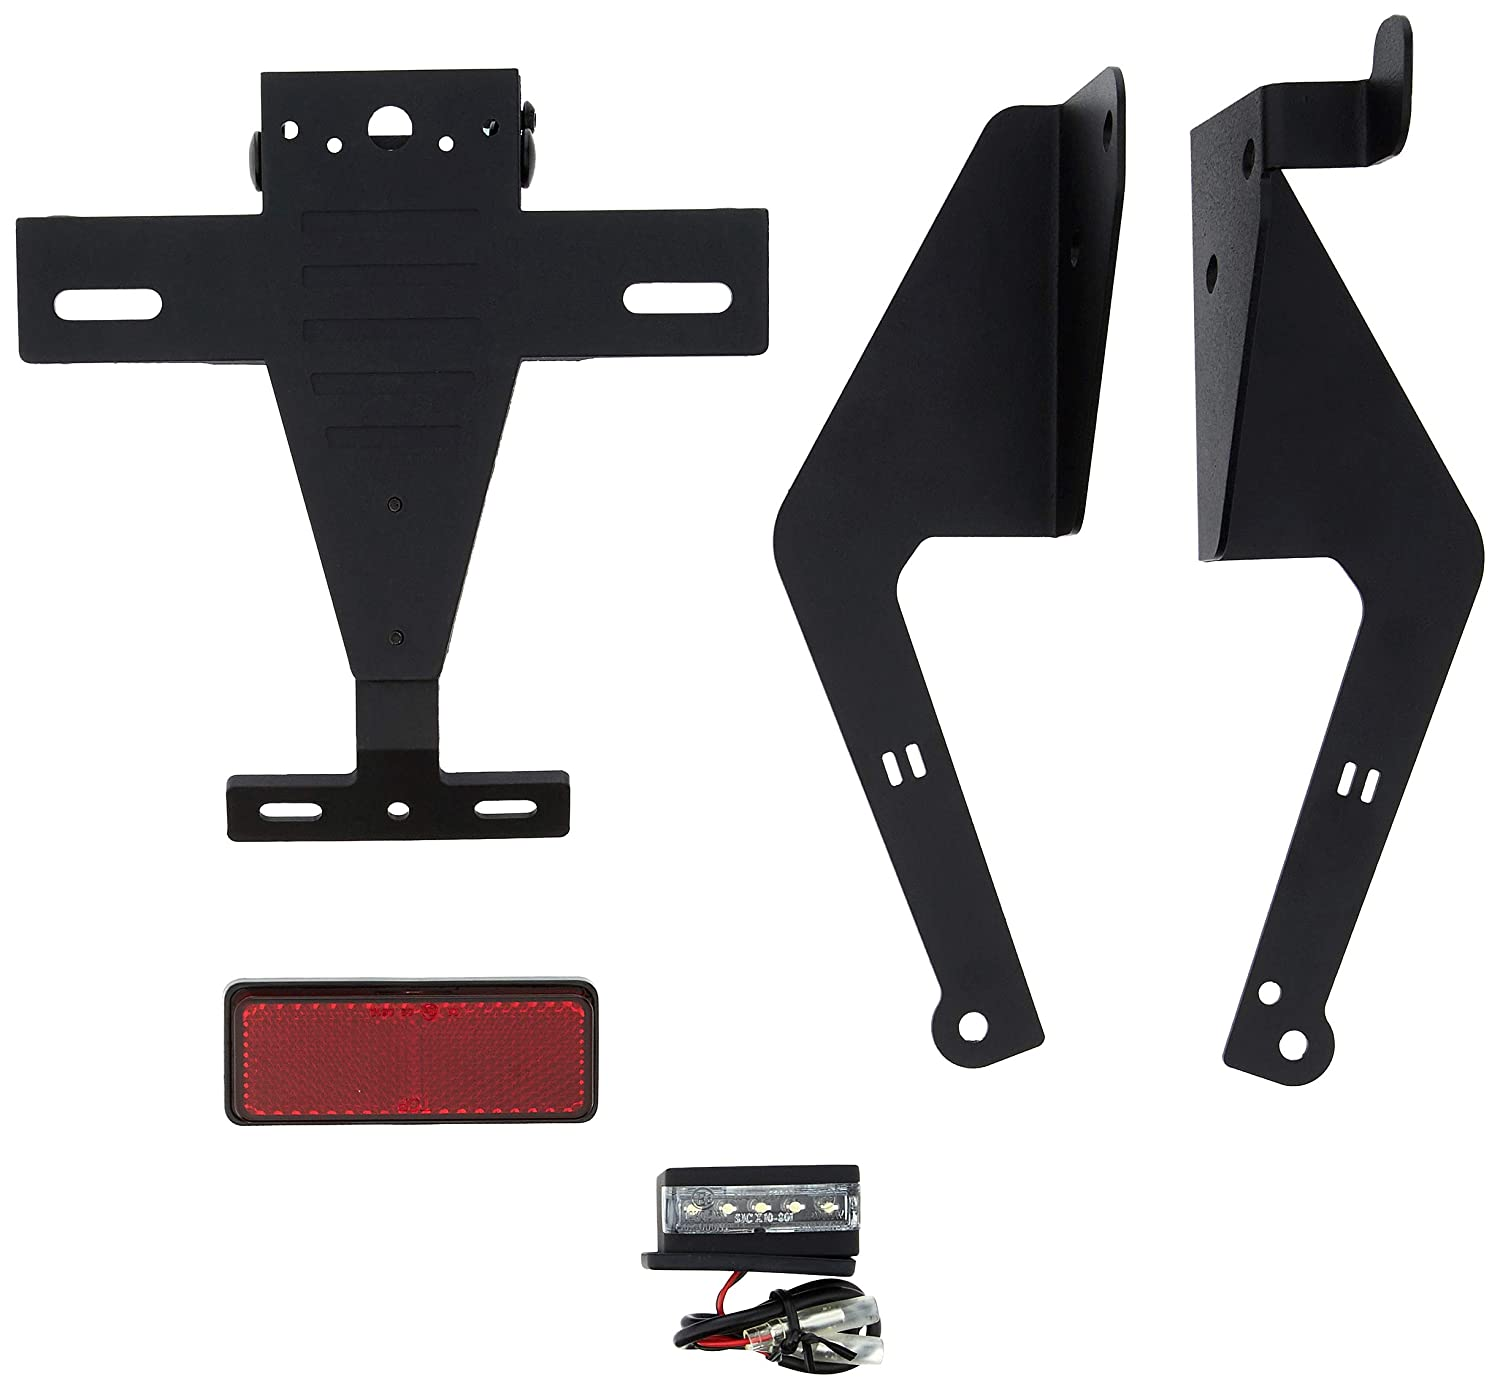 Amazon.com: Puig License Support 9534N Black for Kymco AK ...